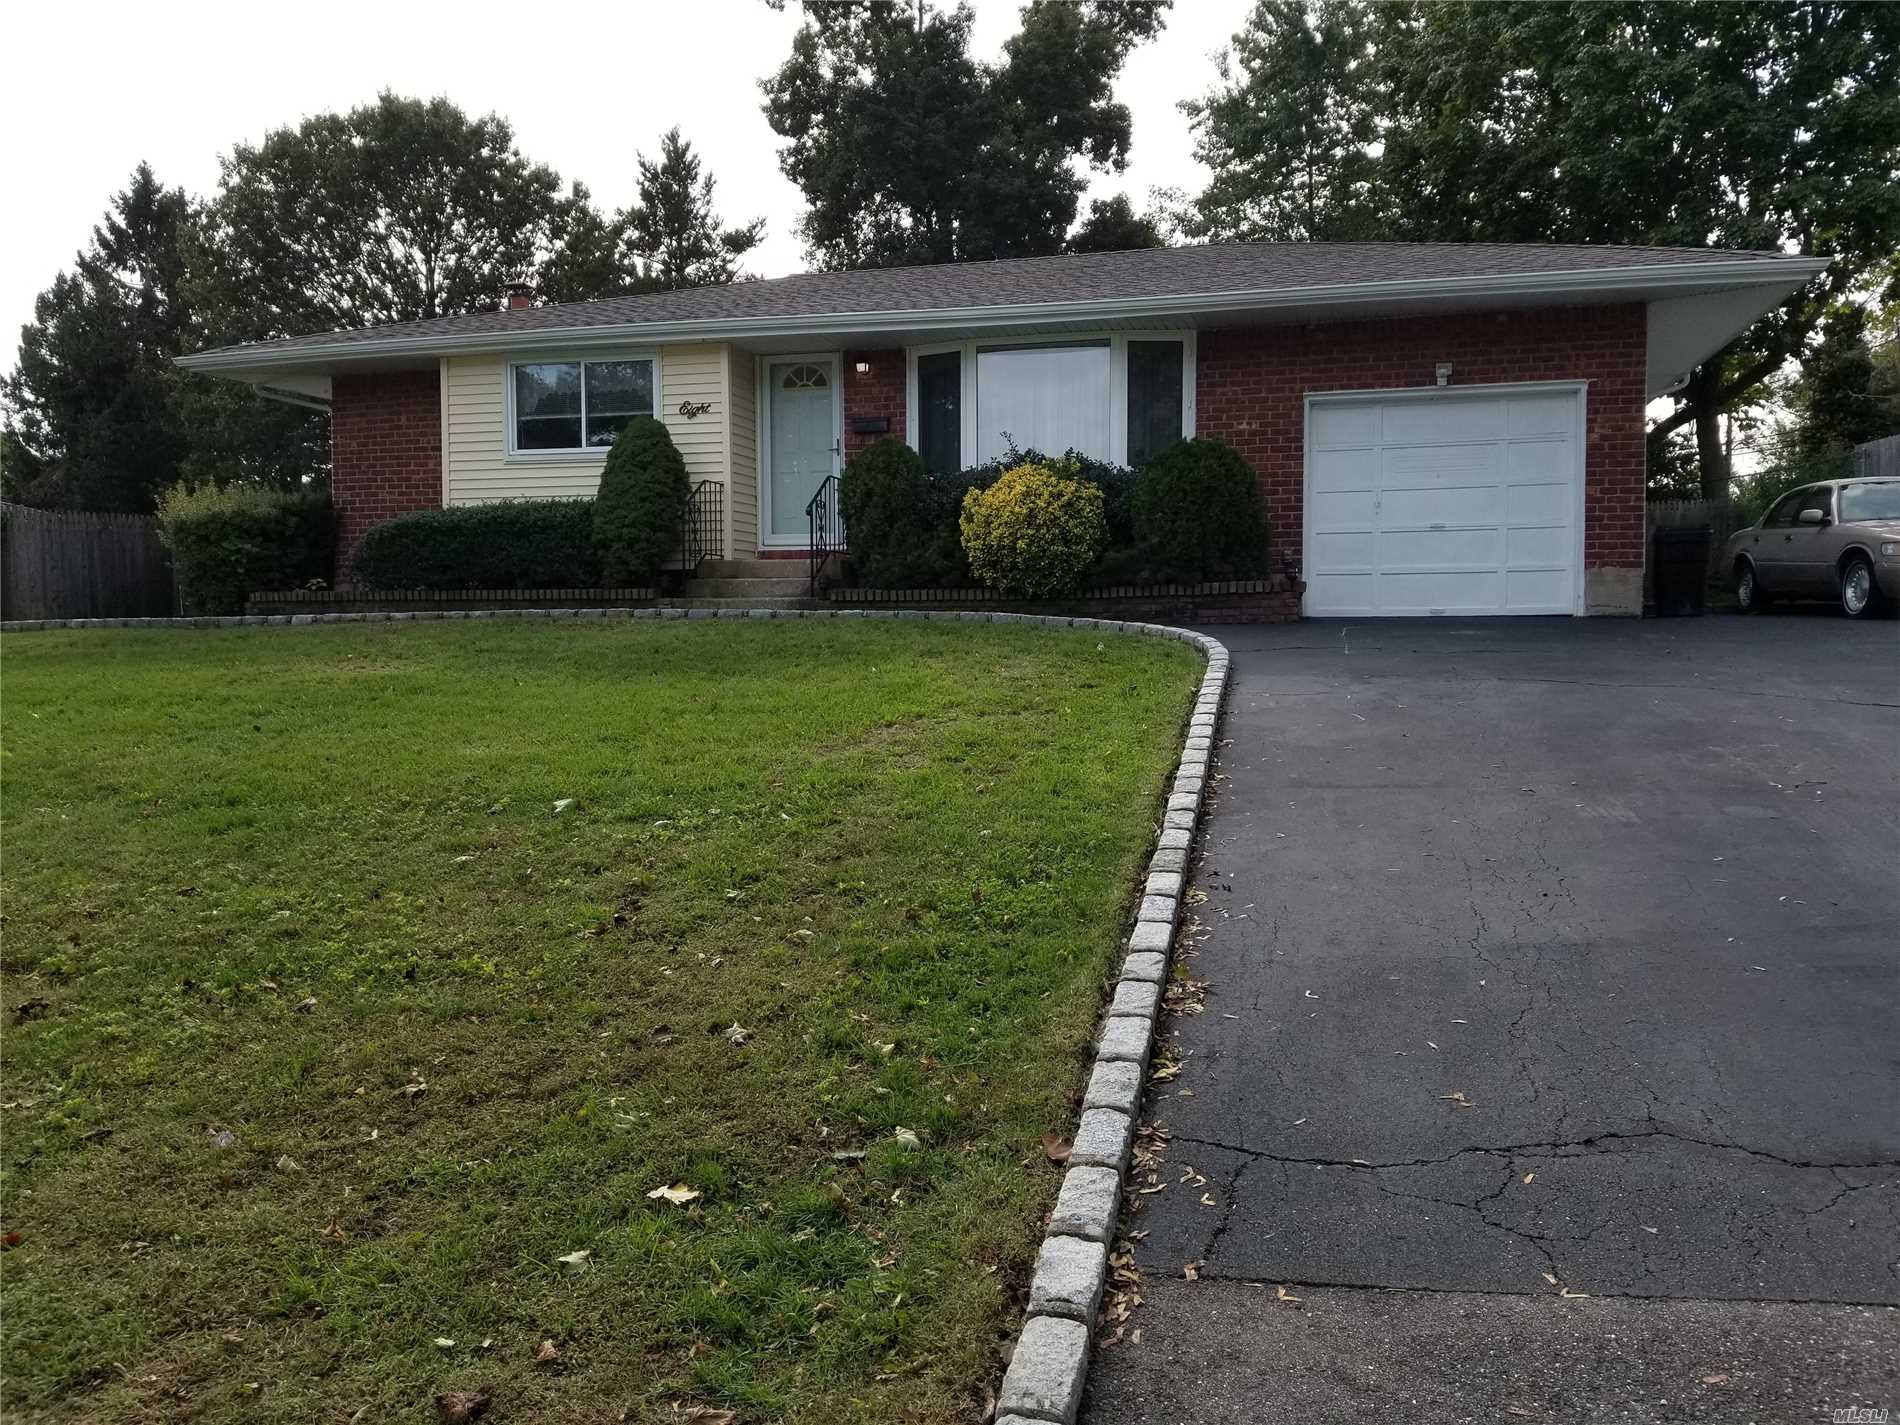 Lovely Expanded Ranch In Beautiful Valmont Section Of Commack With Commack Schools. Newer Roof And Heating System.Newer Central Air Conditioning. Belgian Block Edged Driveway. Updated Kitchen. Convenient To Shopping & Highways. Some Hardwood Floors Under Rugs. 2 Bedrooms Rooms Added To Original Layout. Over Sized 1 Car Garage. Wood Burning Stove Will Keep Bills Down!